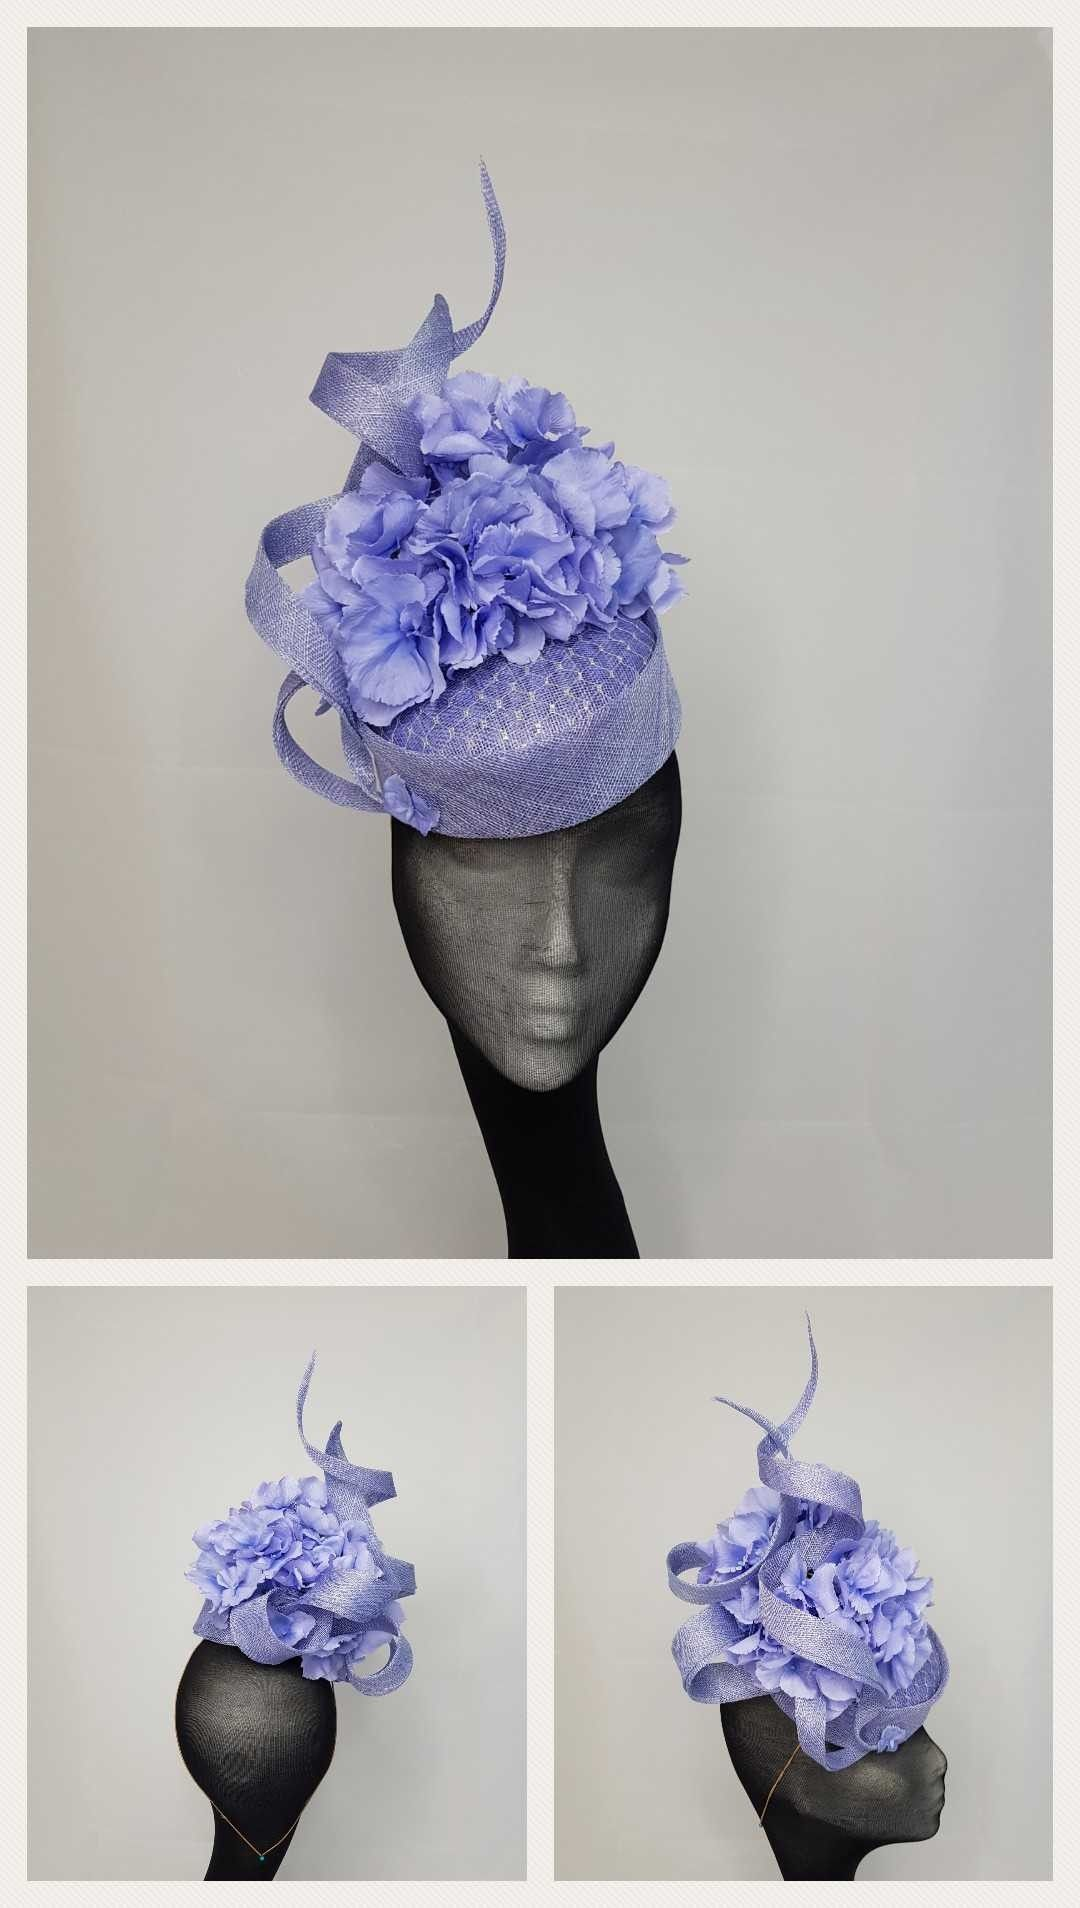 941c6ae1b2f Carla - blue delicate silk hydrangeas surrounded by sinamay twists set on a  base with metallic silver veil overlay.  SS18  newcollection  kjmillinery    ...